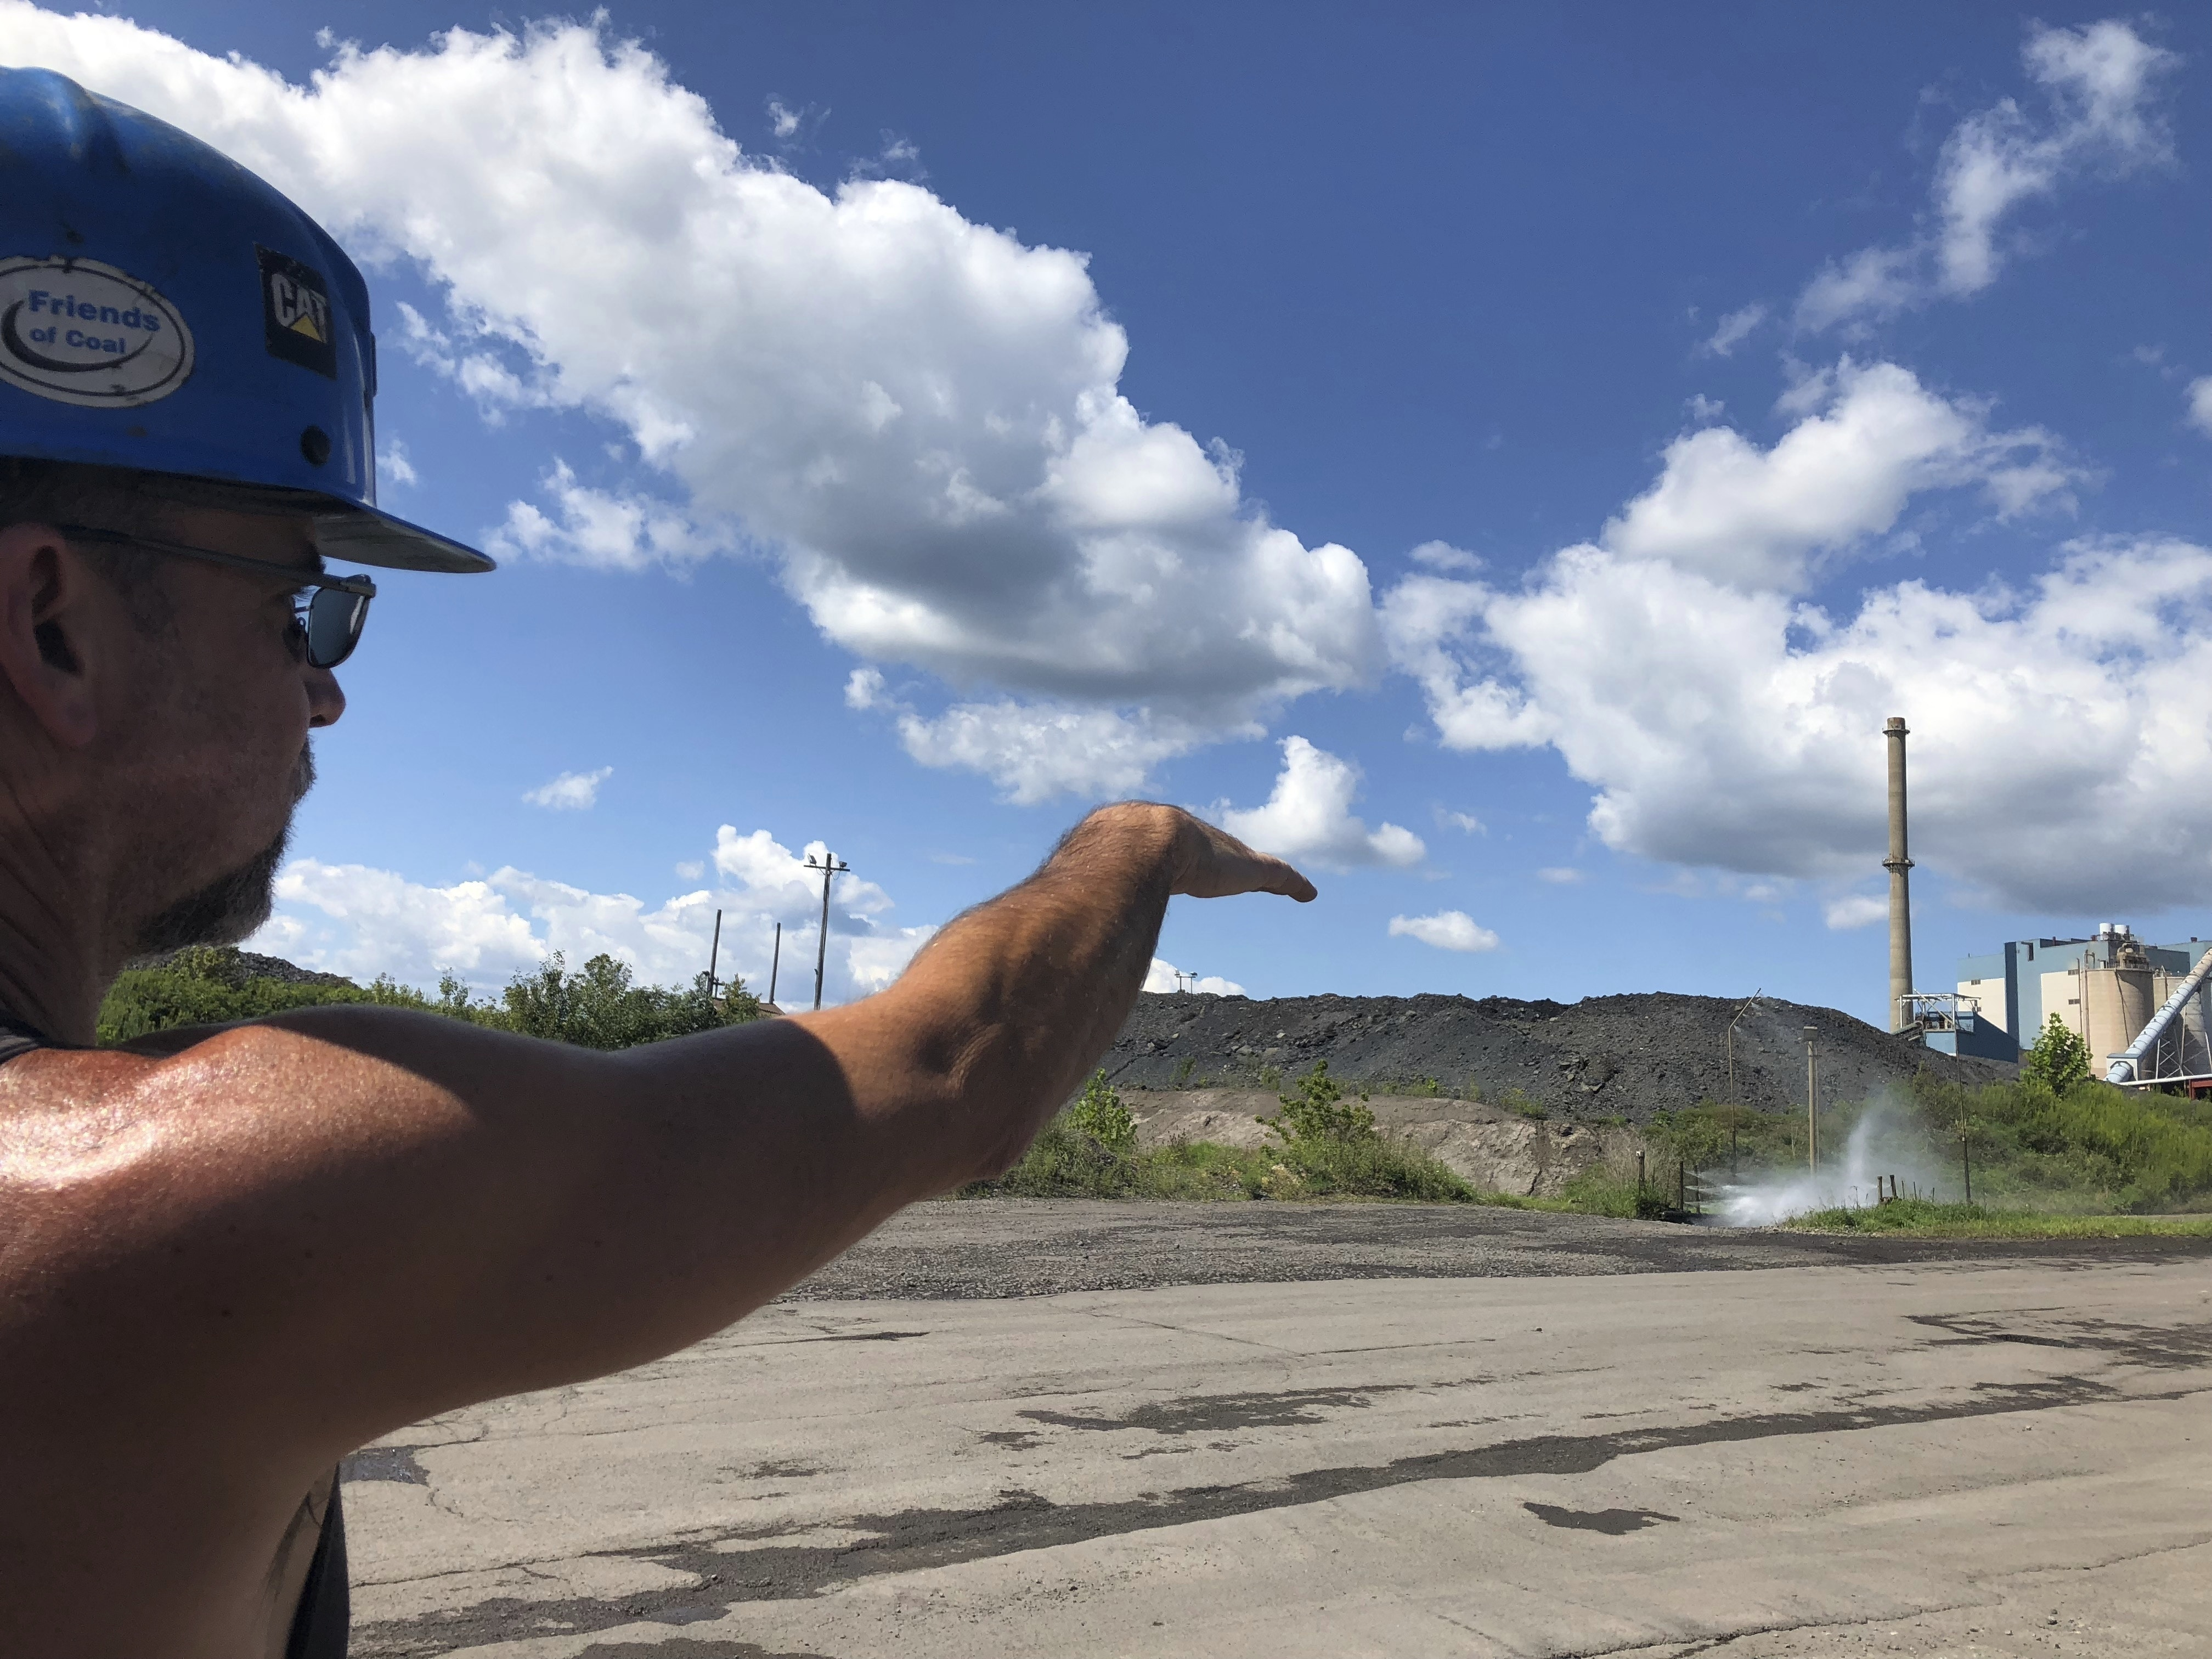 Brian Weekly, a contractor at West Virginia's Grant Town coal-fired power plant, gestures toward the small facility's smokestack, Thursday, Aug. 23, 2018 in Grant Town, W.Va. Weekly says opponents of the coal industry are behind warnings of health risks from smokestack emissions under the Trump administration's plan. President Donald Trump picked West Virginia where he announced rolling back pollution rules for coal-fired power plants. But he didn't mention that the northern two-thirds of West Virginia, with the neighboring part of Pennsylvania, would be hit hardest.  (AP Photo/ Ellen Knickmeyer)